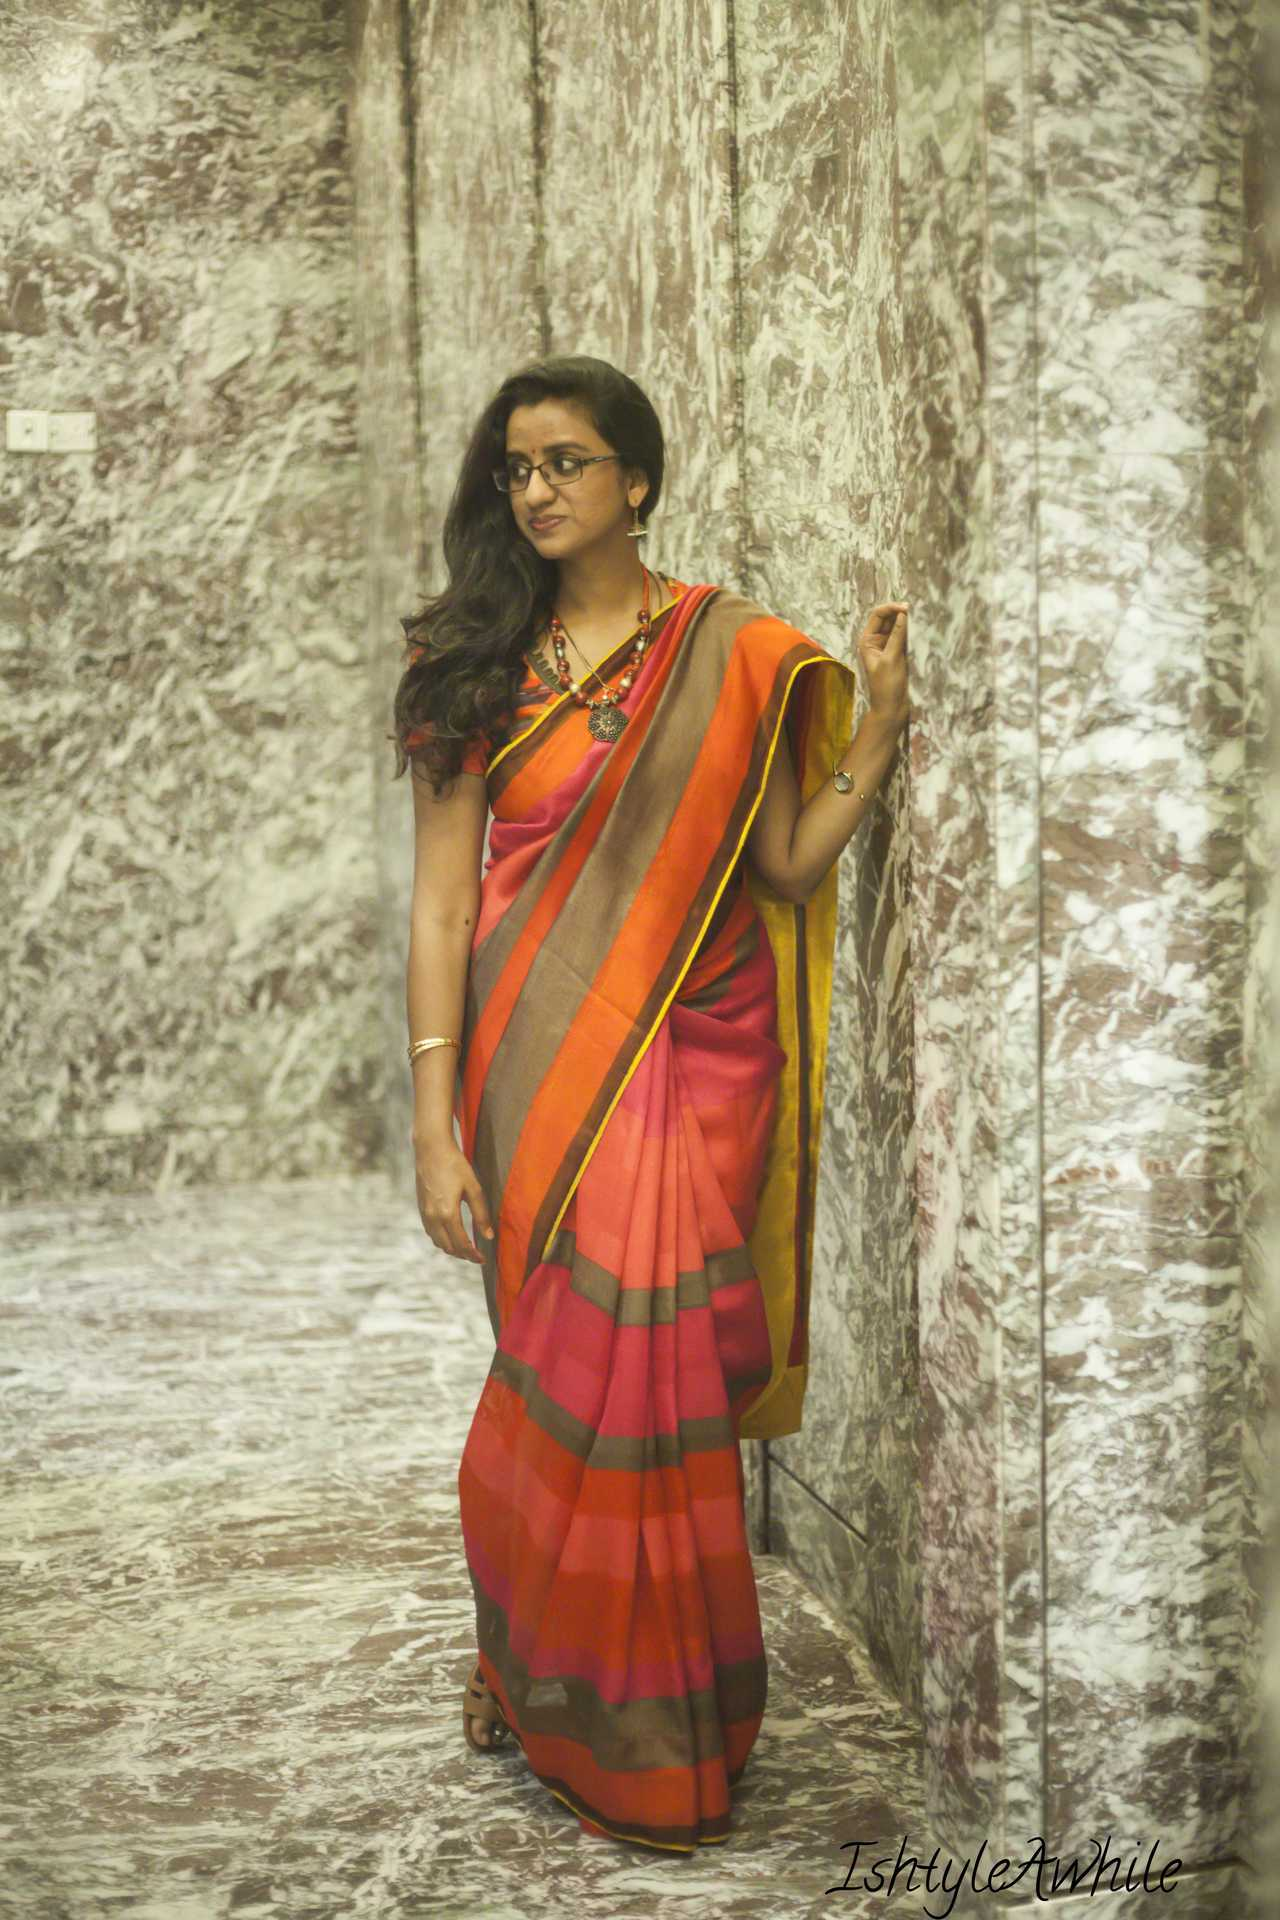 IshtyleAwhile - how to rewear a sari